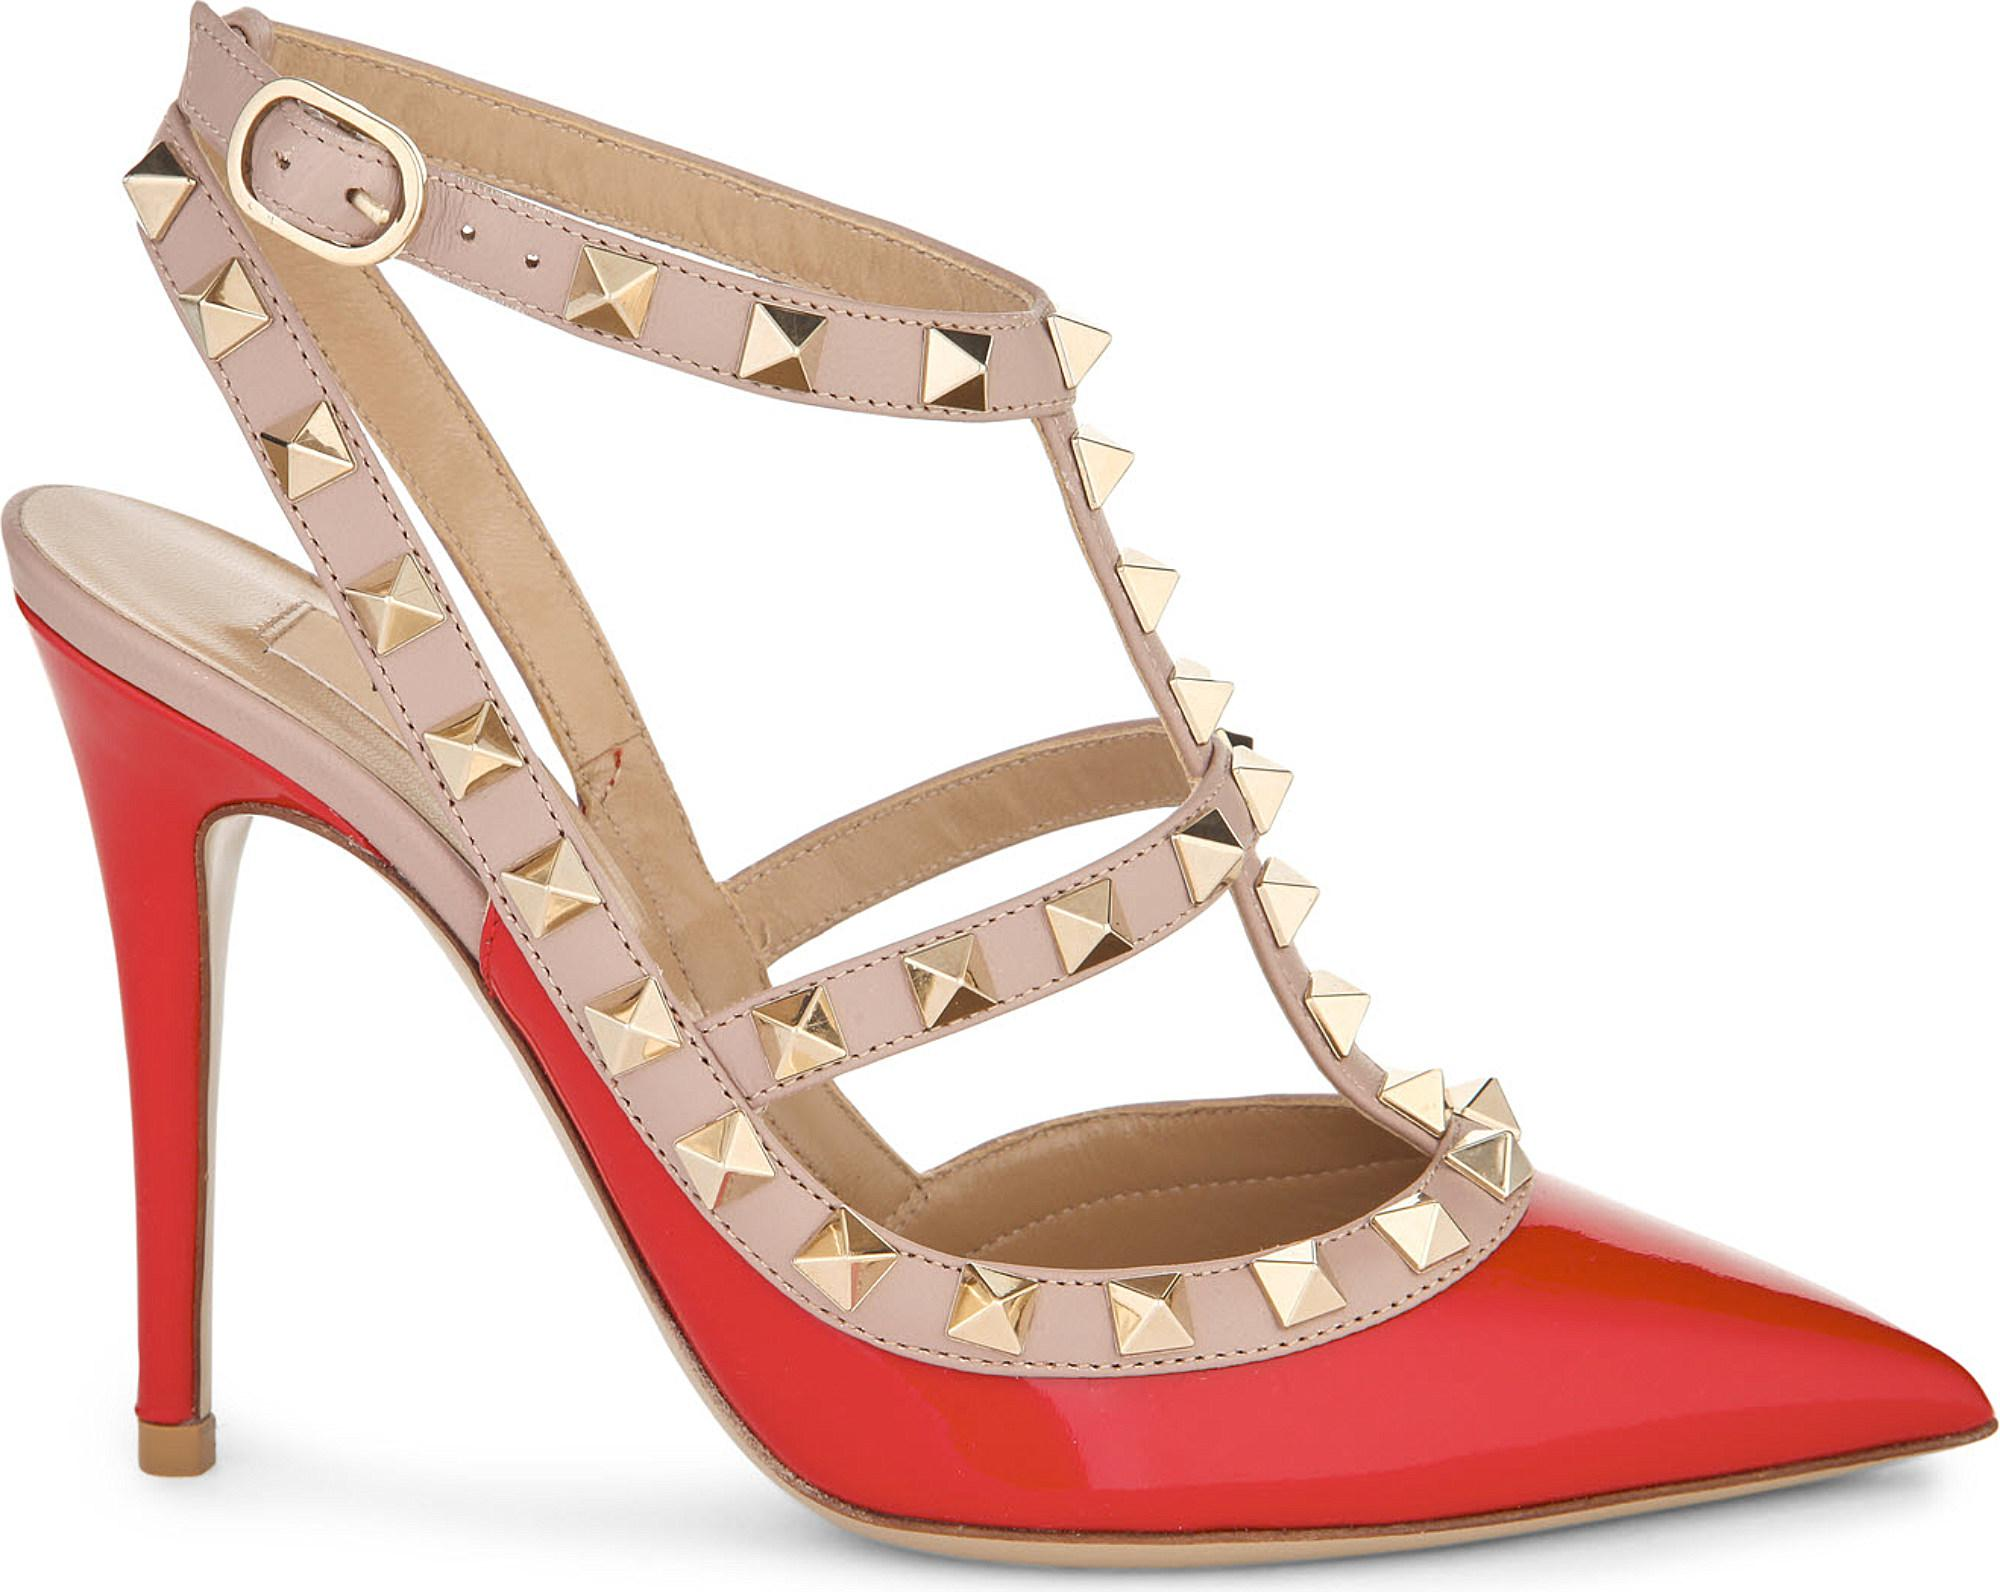 aaf9e778320d Valentino Rockstud 100 Patent-leather Courts in Red - Lyst